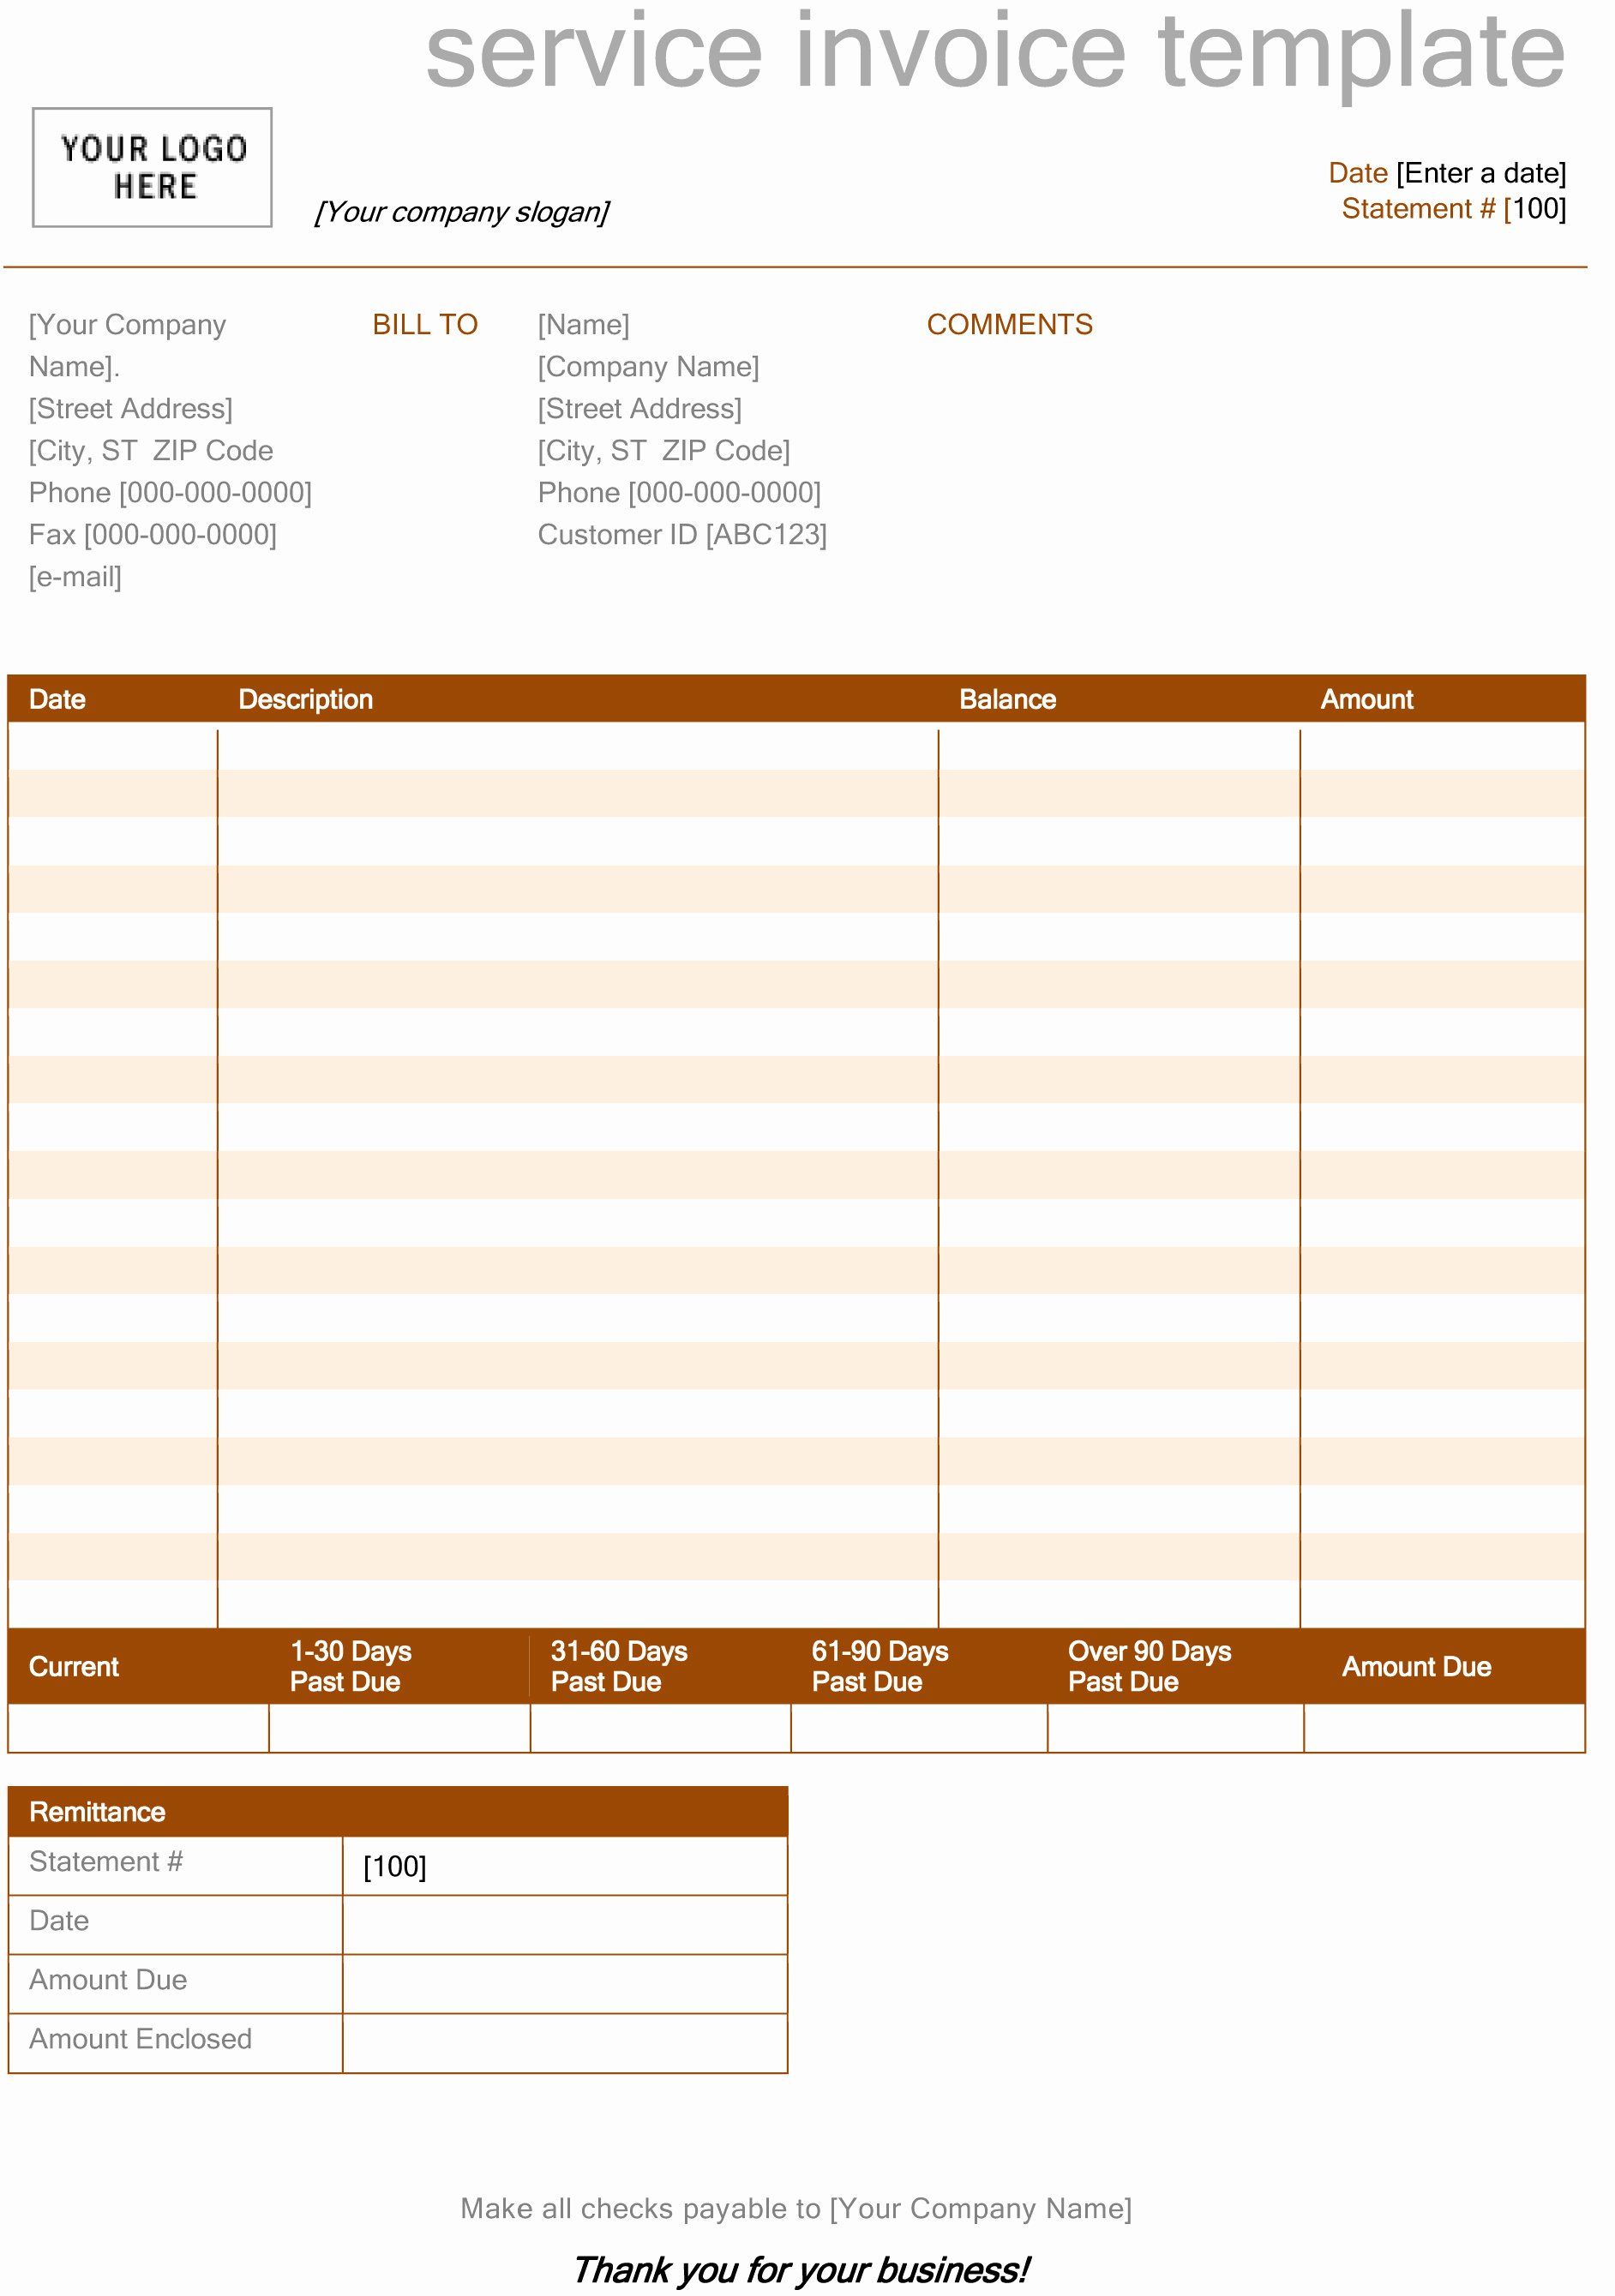 Blank Invoice Template Free Awesome Invoice Template Microsoft Word Spreadsheet Templates for